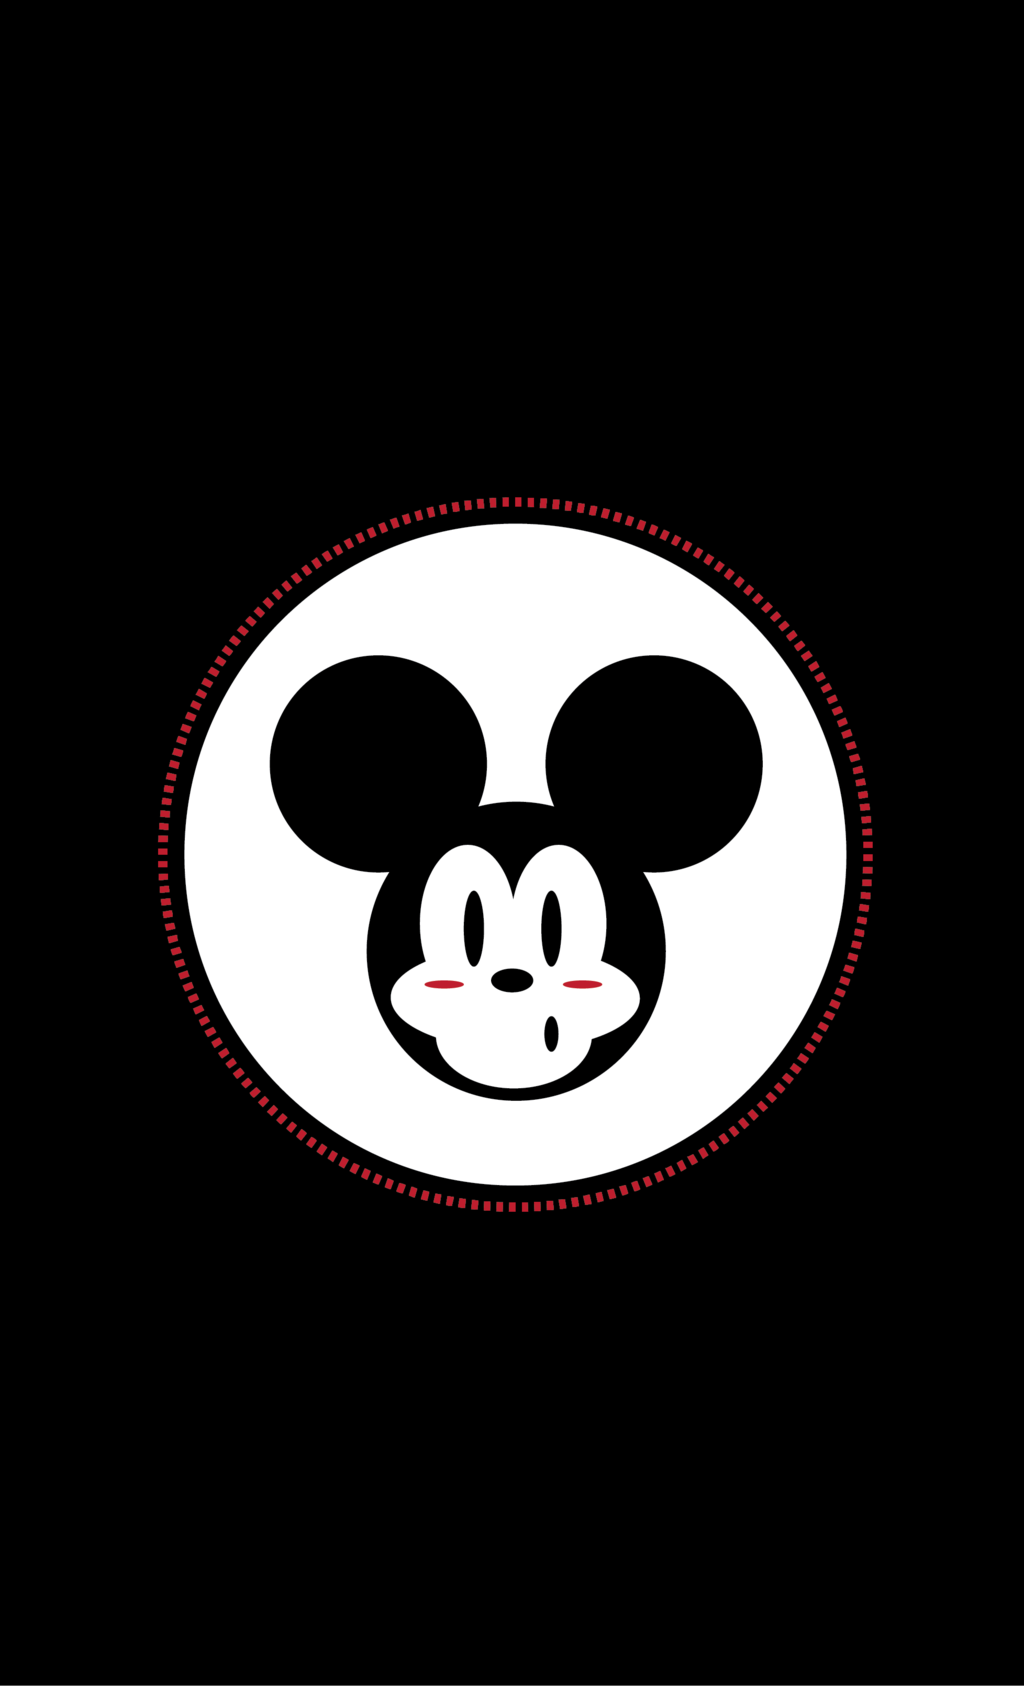 Wallpaper iphone mickey mouse - Funmozar Mickey Mouse Wallpapers For Iphone 5